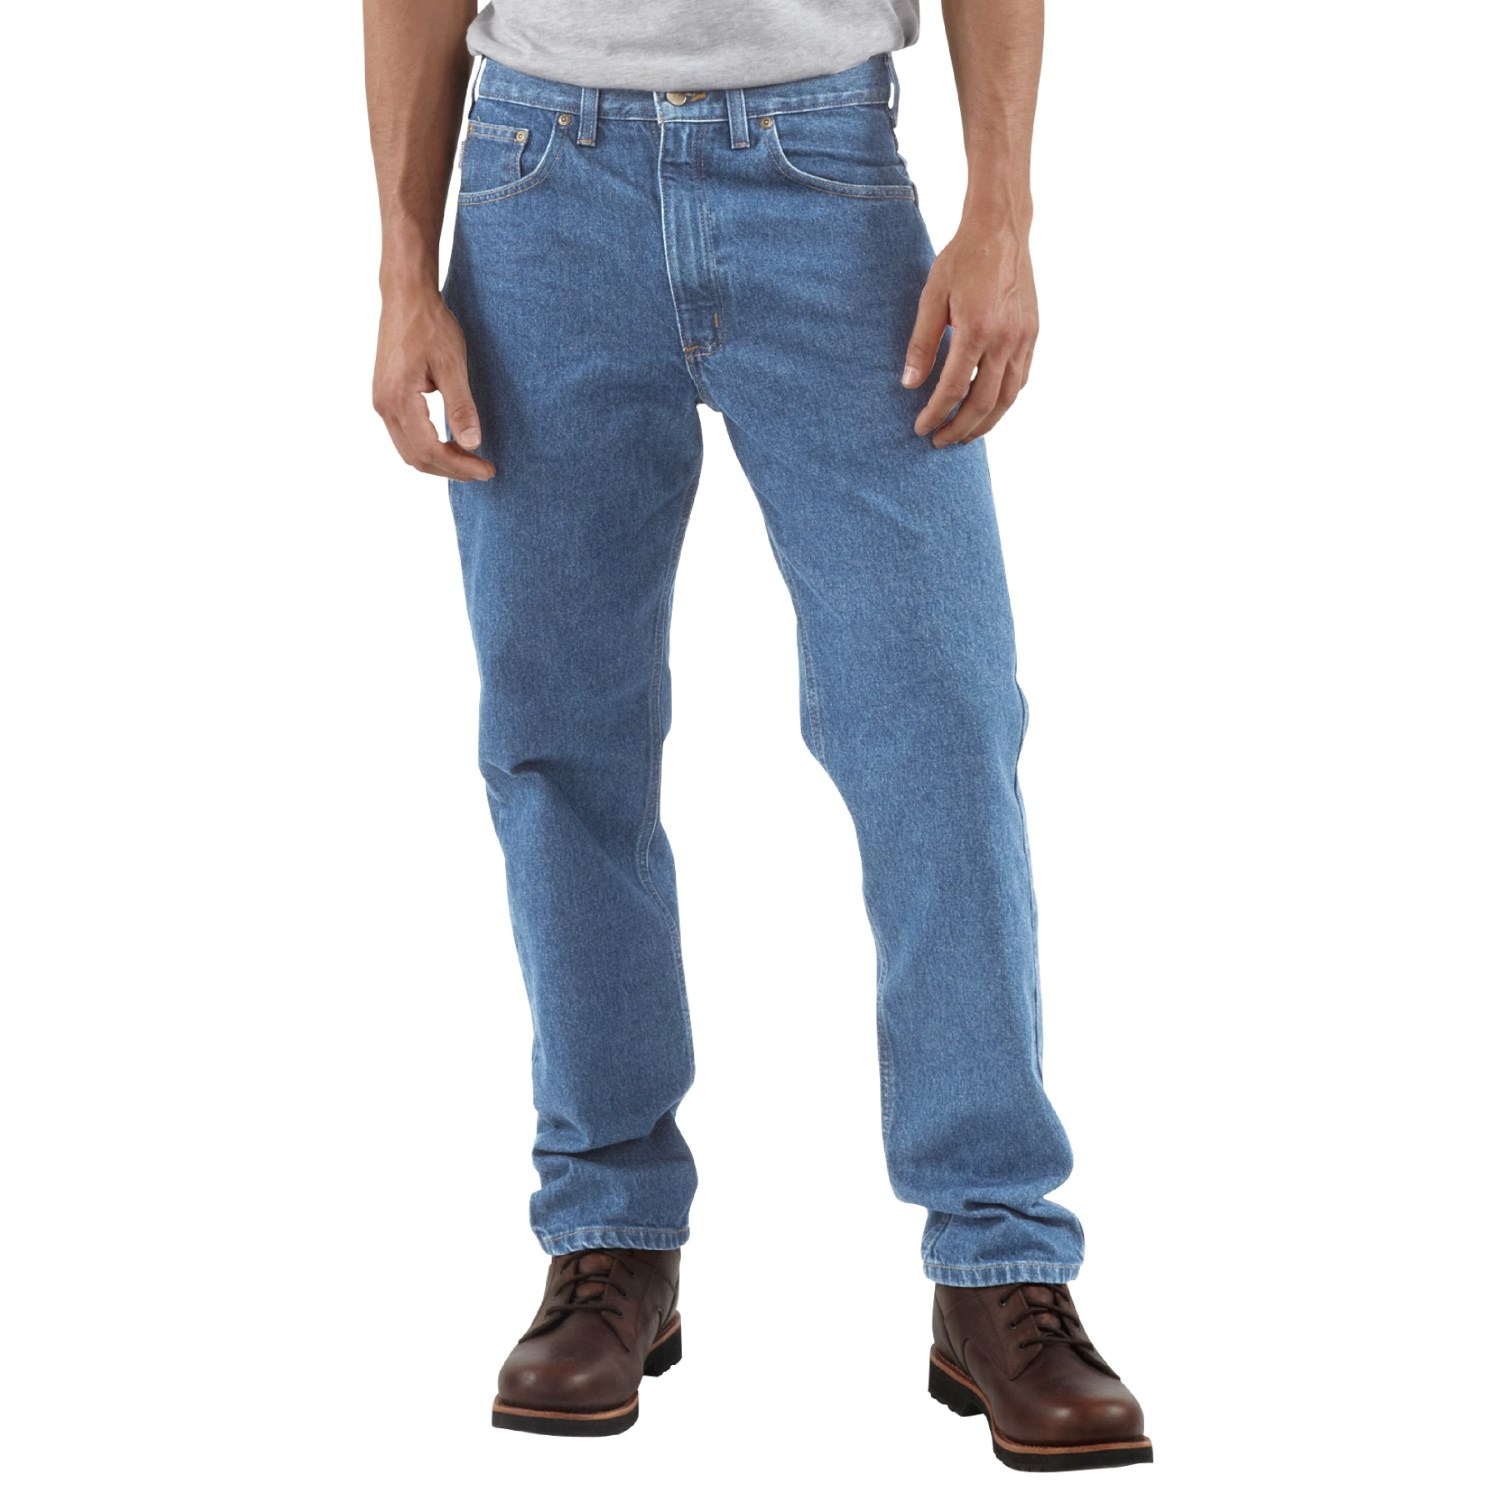 Carhartt Traditional Fit Work Jeans (For Men)